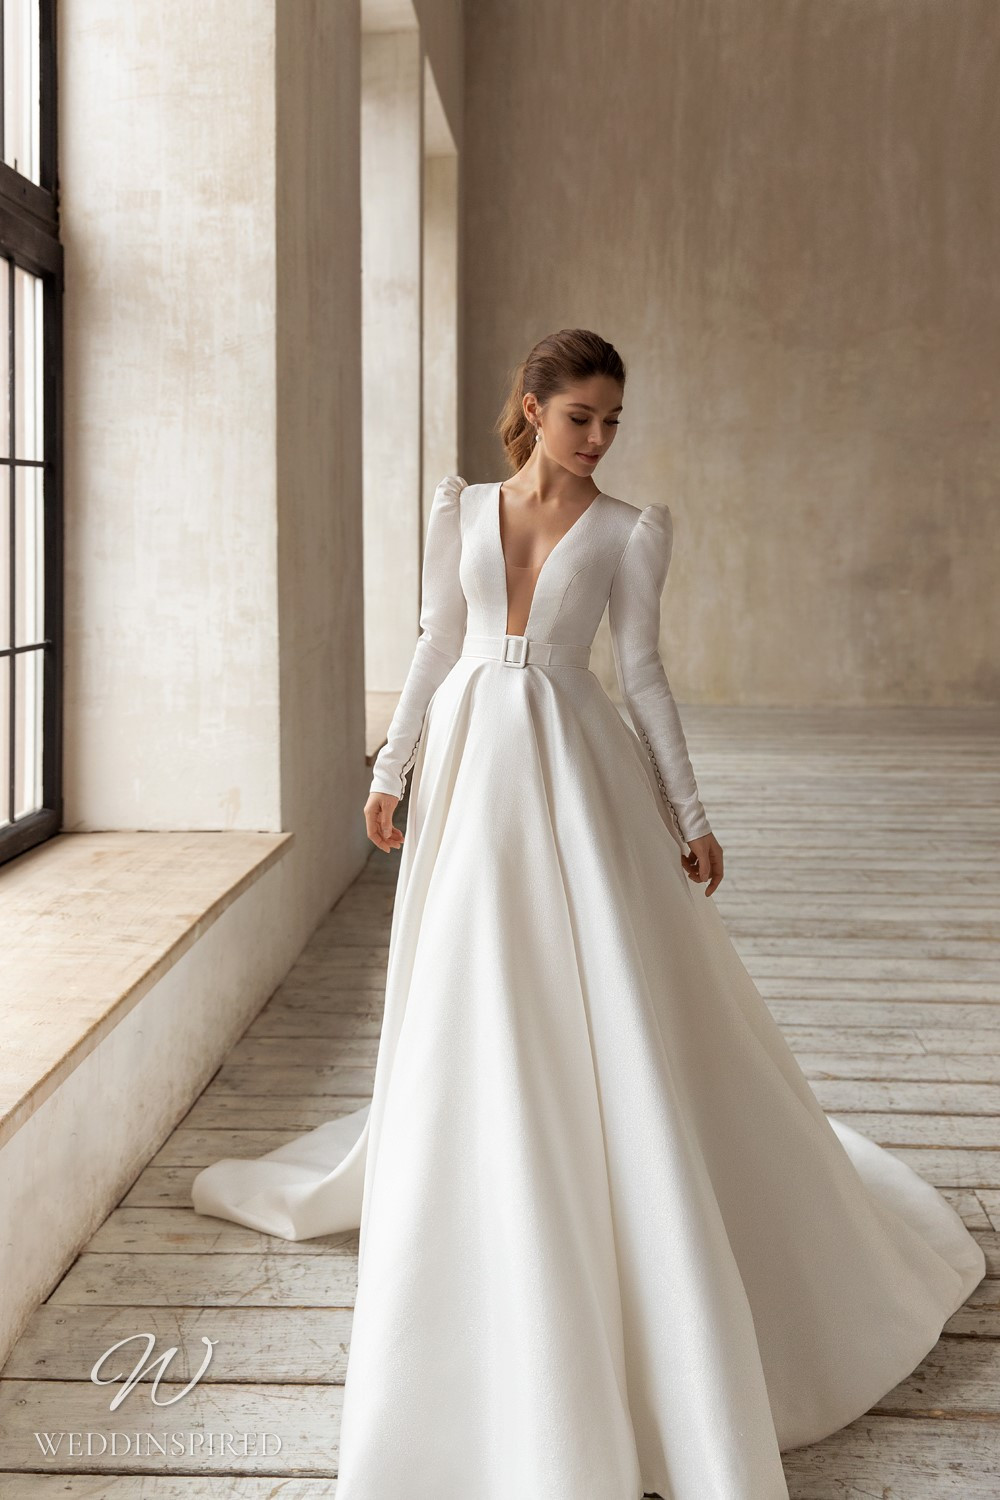 An Eva Lendel 2021 simple crepe ball gown wedding dress with long puff sleeves and a train